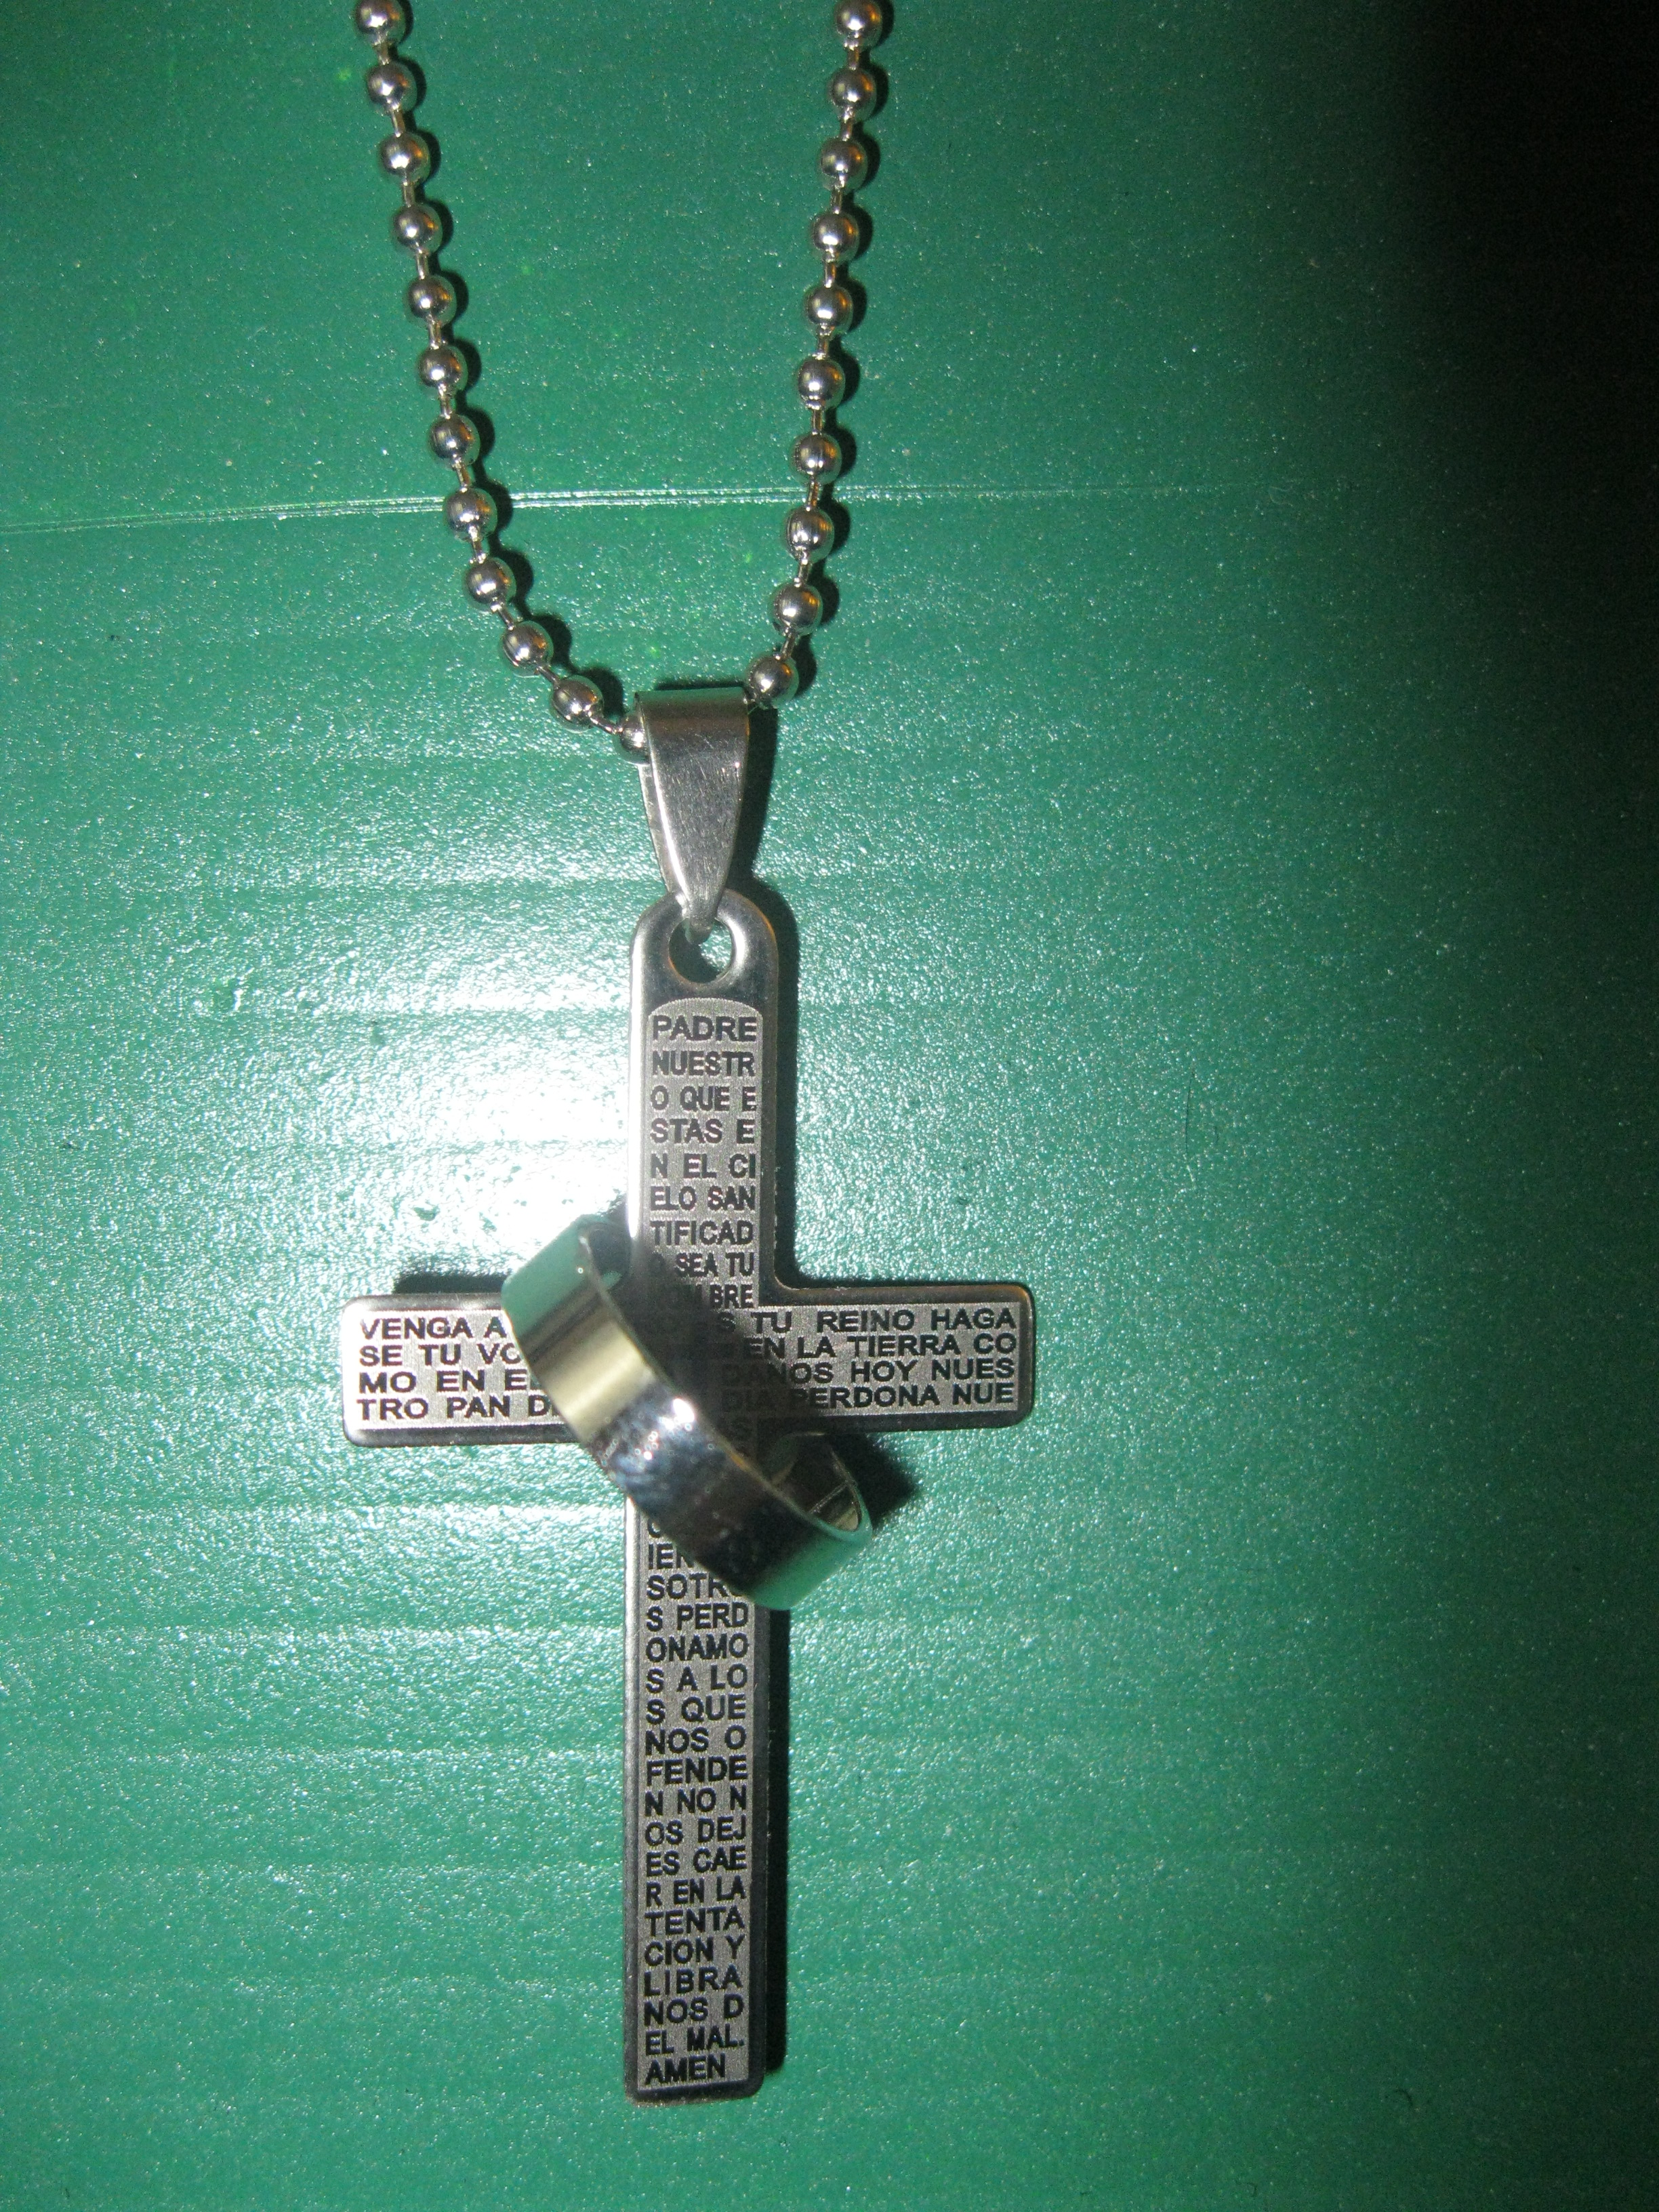 necklace products the prayer jewelry me pendant serenity religious faith grant god biblical heart